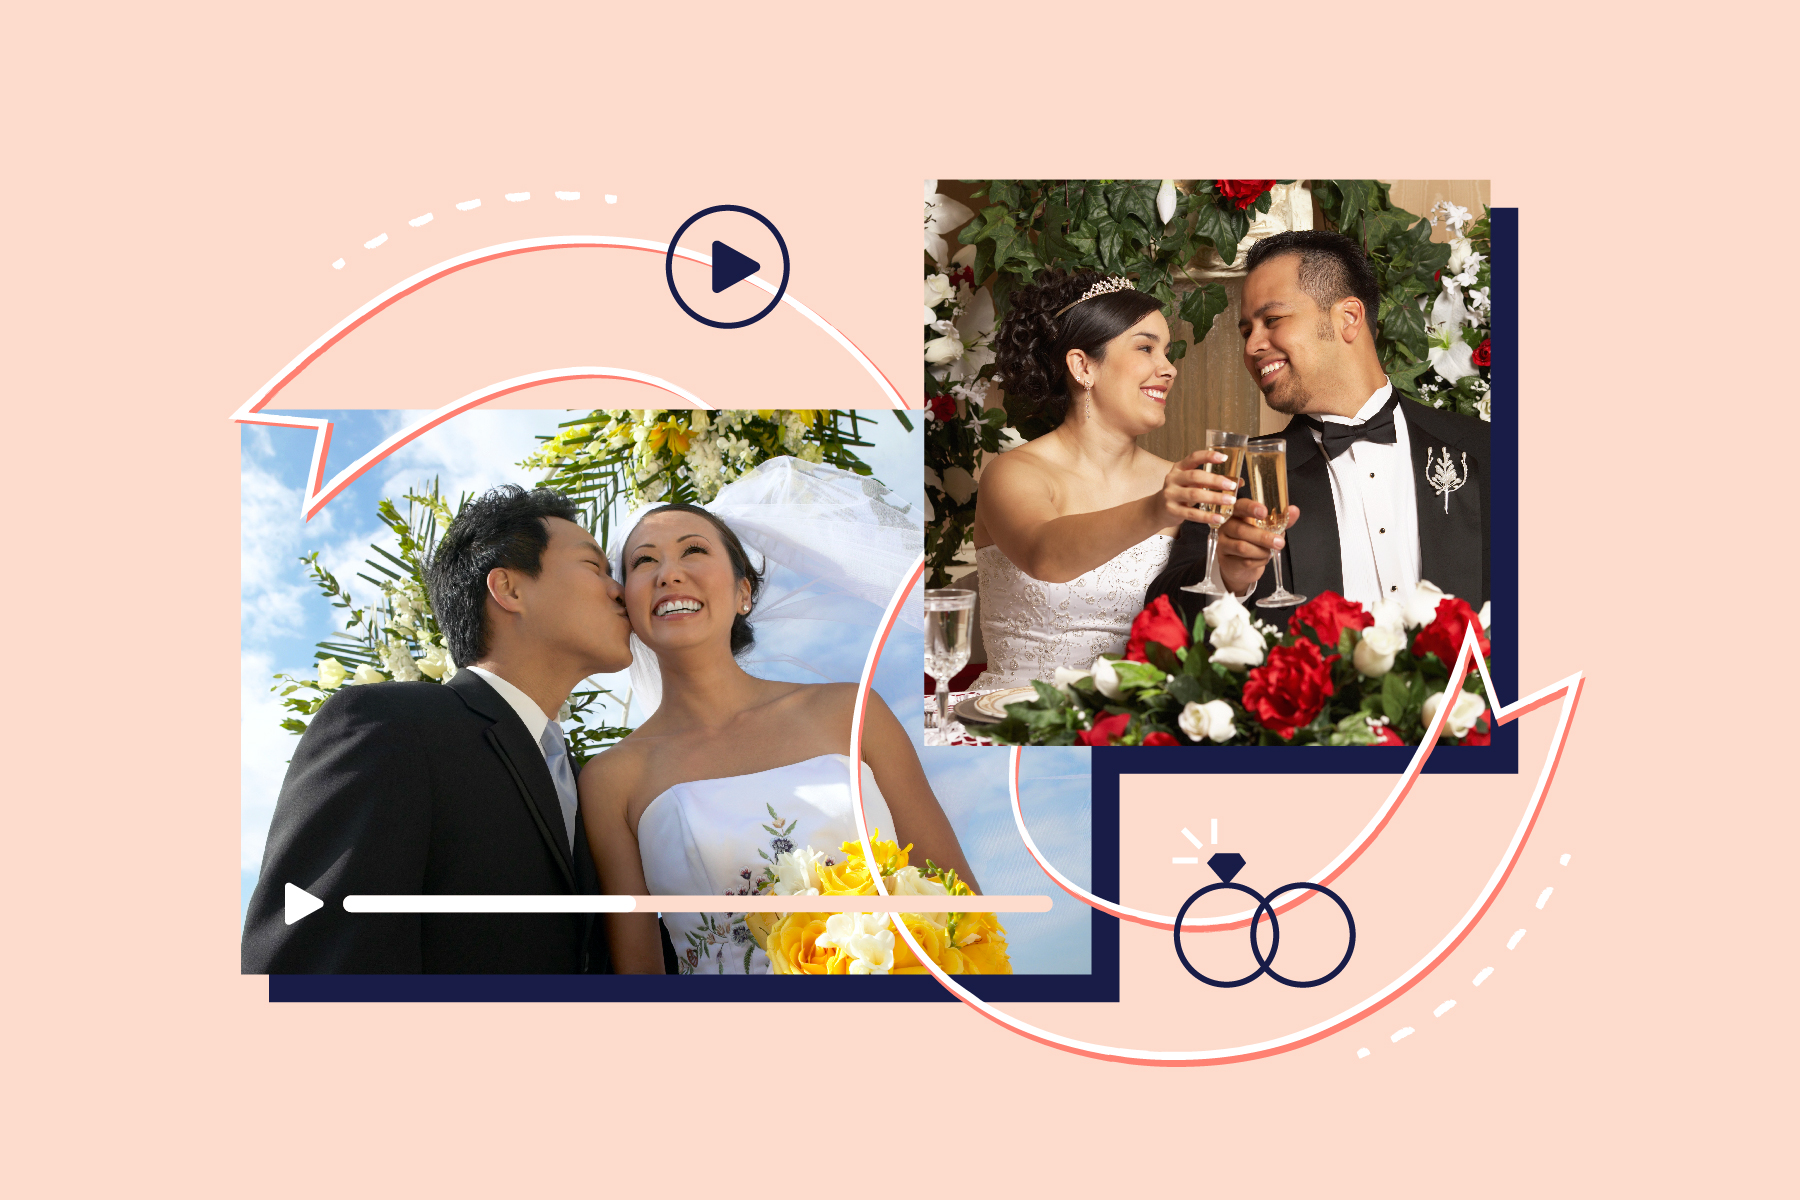 26 Inventive Ways to Share Your Wedding with Video